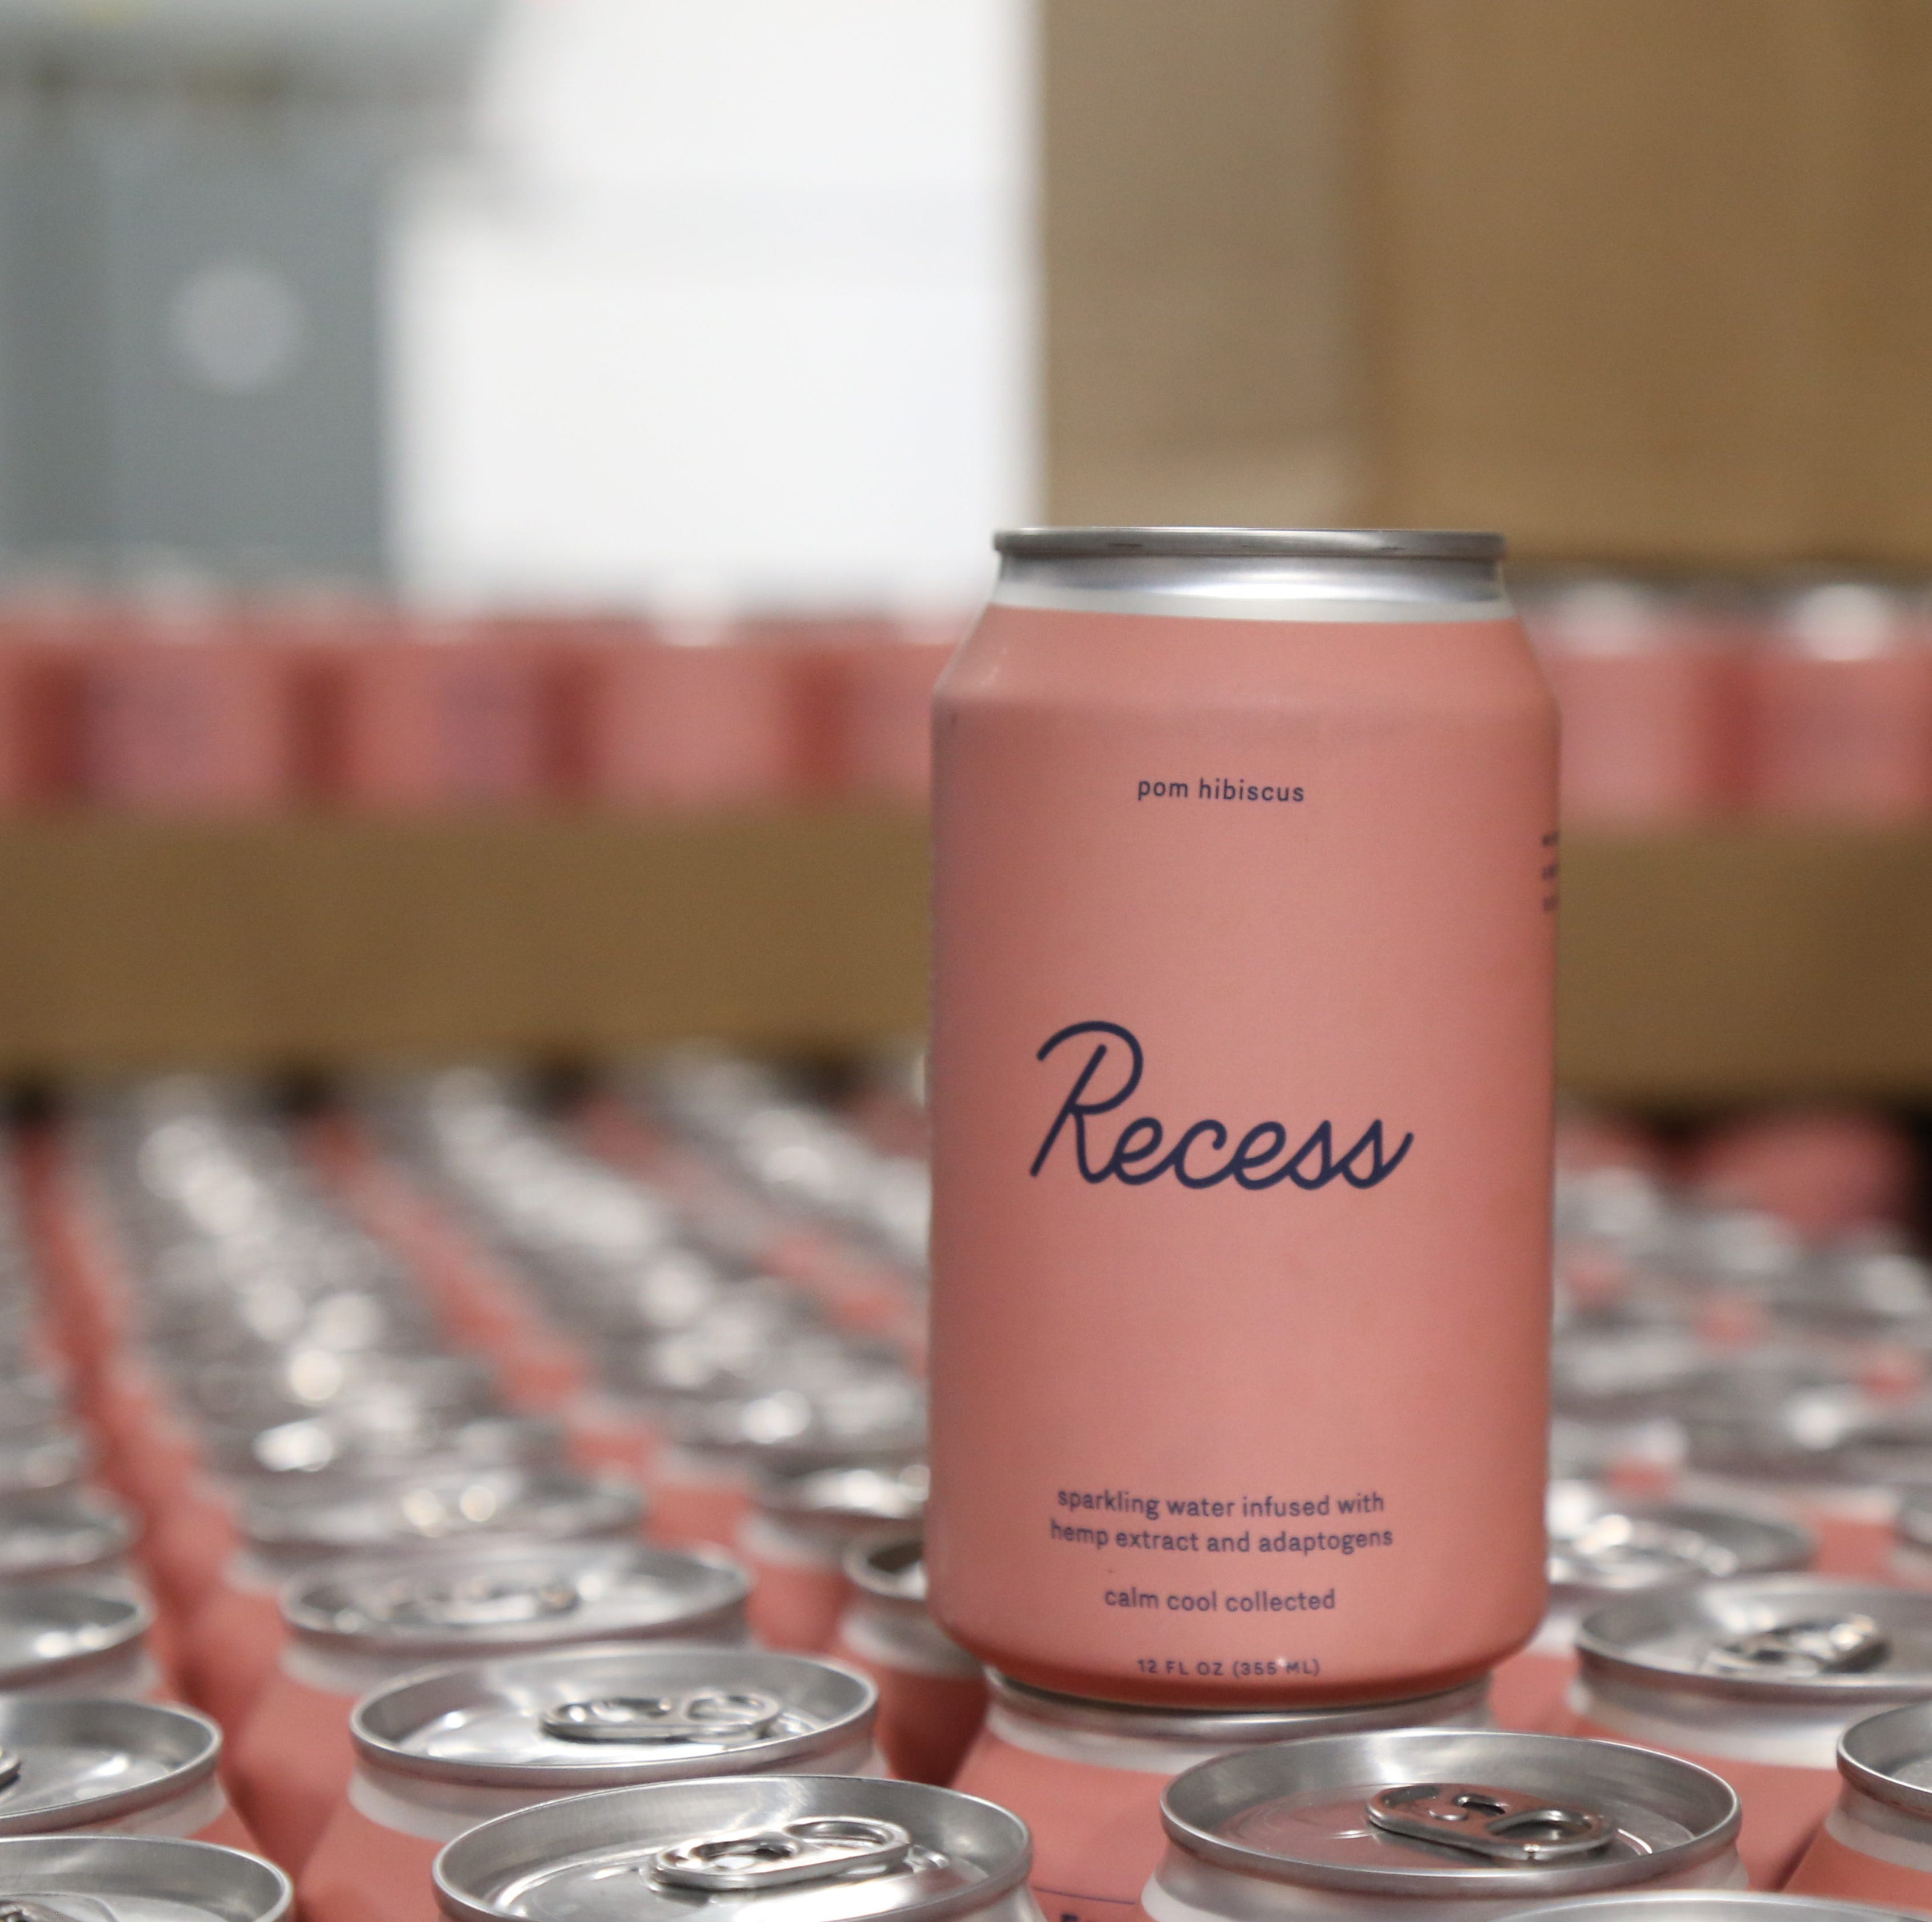 Recess, CBD-infused sparkling water, shows trend's growth in Hudson Valley